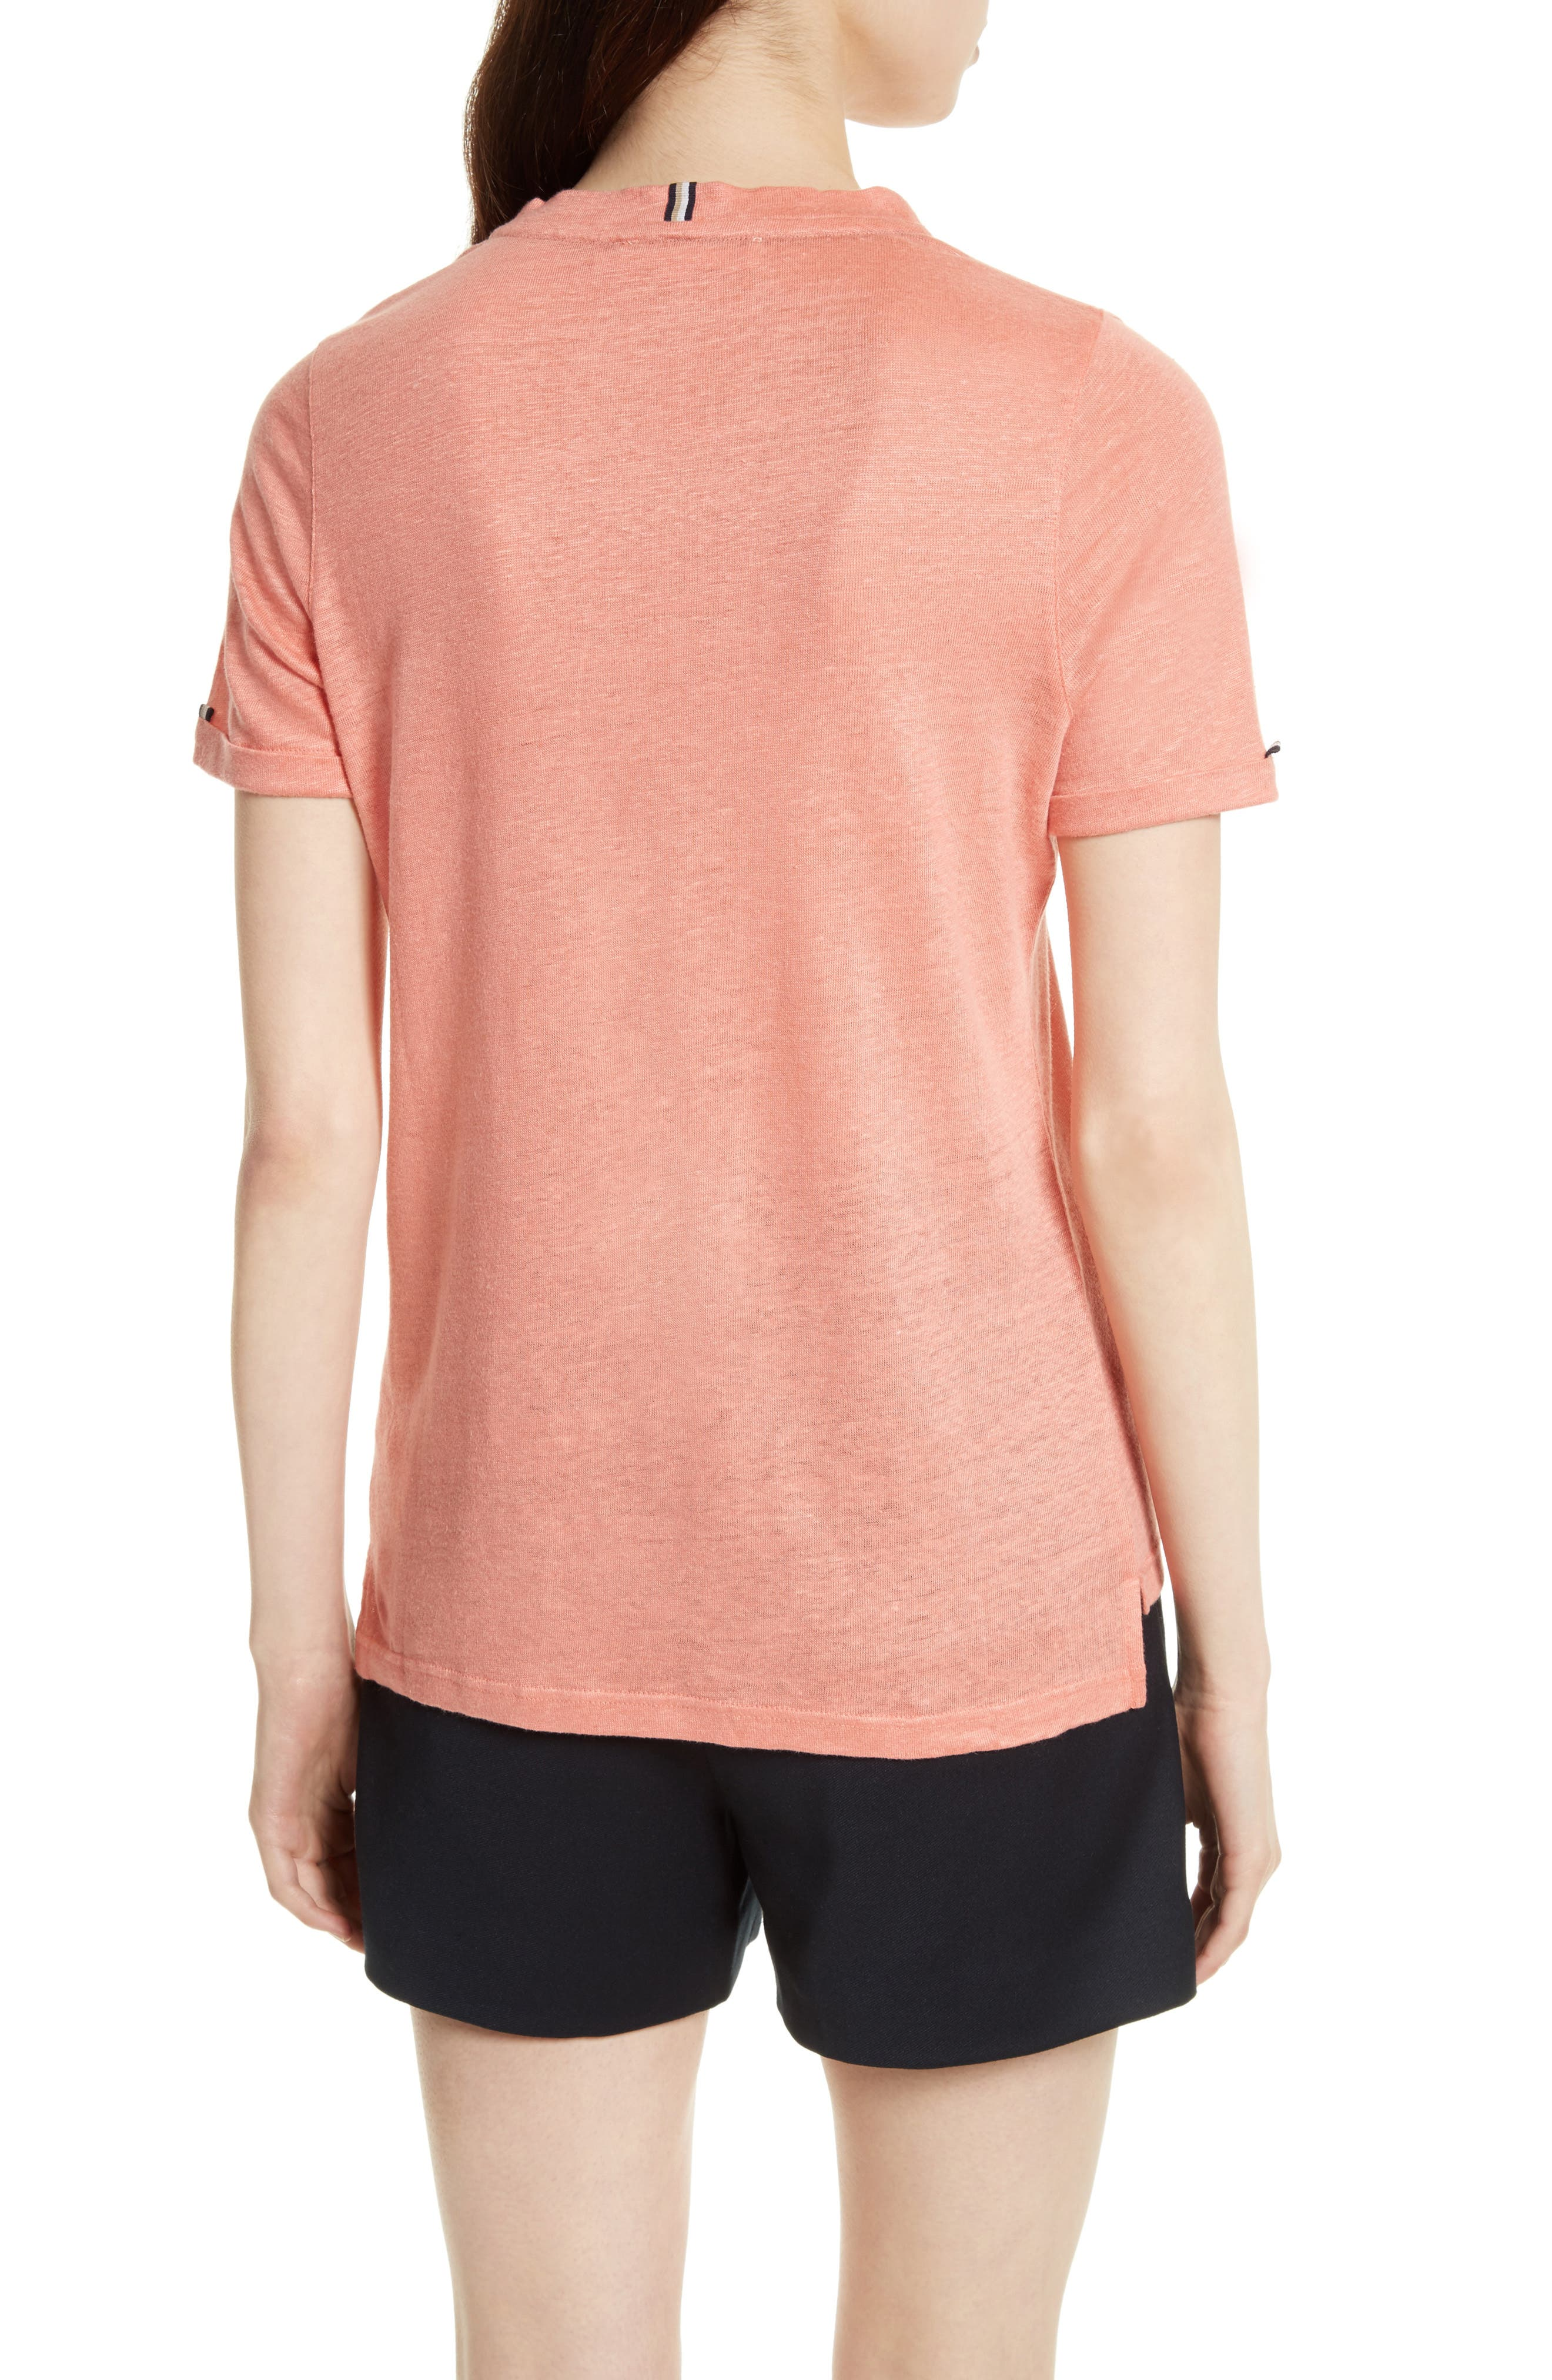 Harlaa Square Cut Linen Tee,                             Alternate thumbnail 2, color,                             Coral